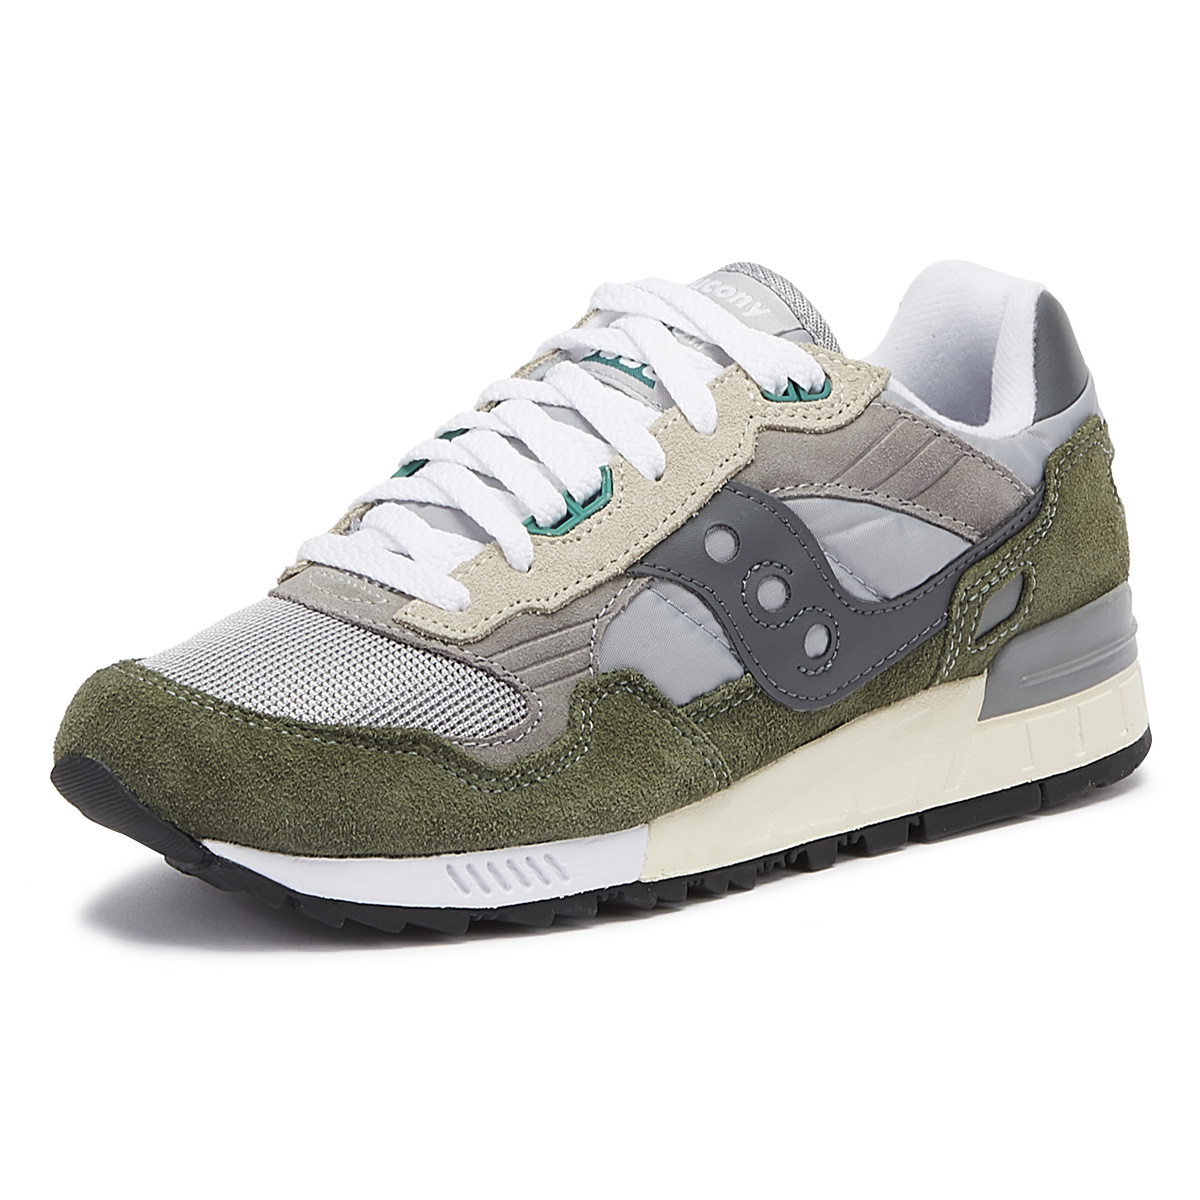 Details about Saucony Shadow 5000 Vintage Mens Grey Casual Lifestyle Shoes Sneakers S70404 13